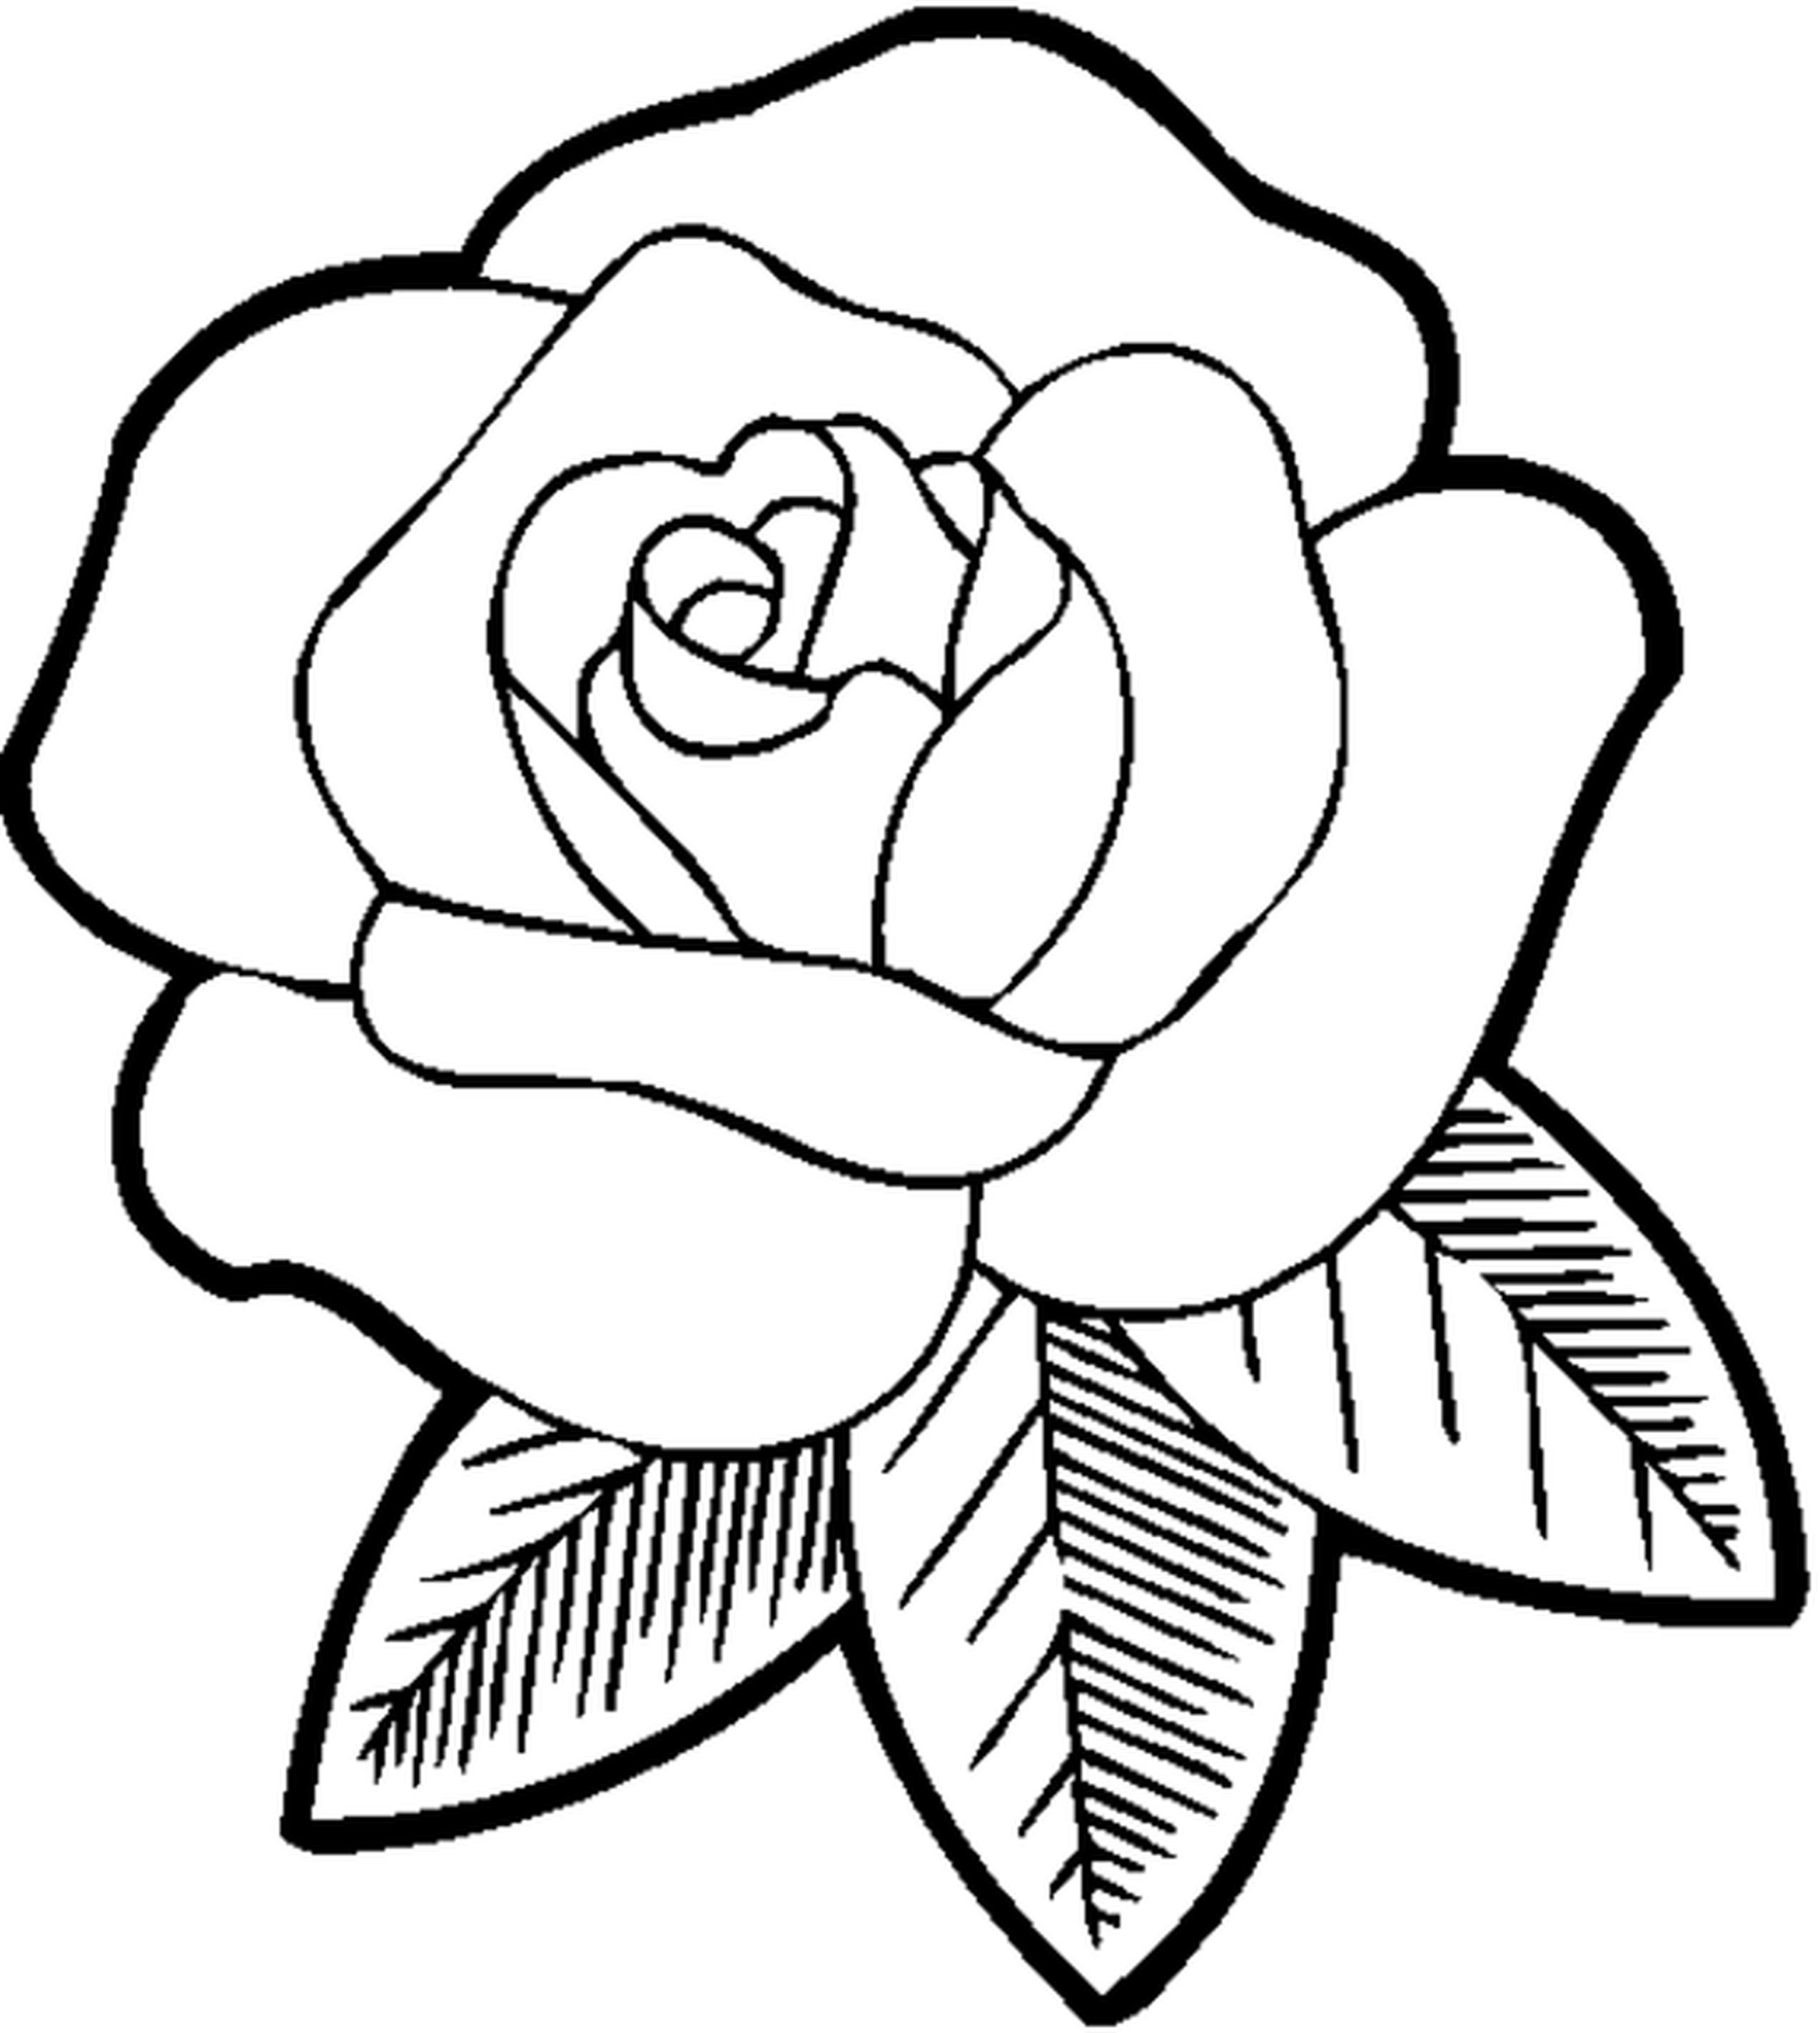 2550x2849 Rose Bud Flower Coloring Pages For Kids Inspirational Easy Kids